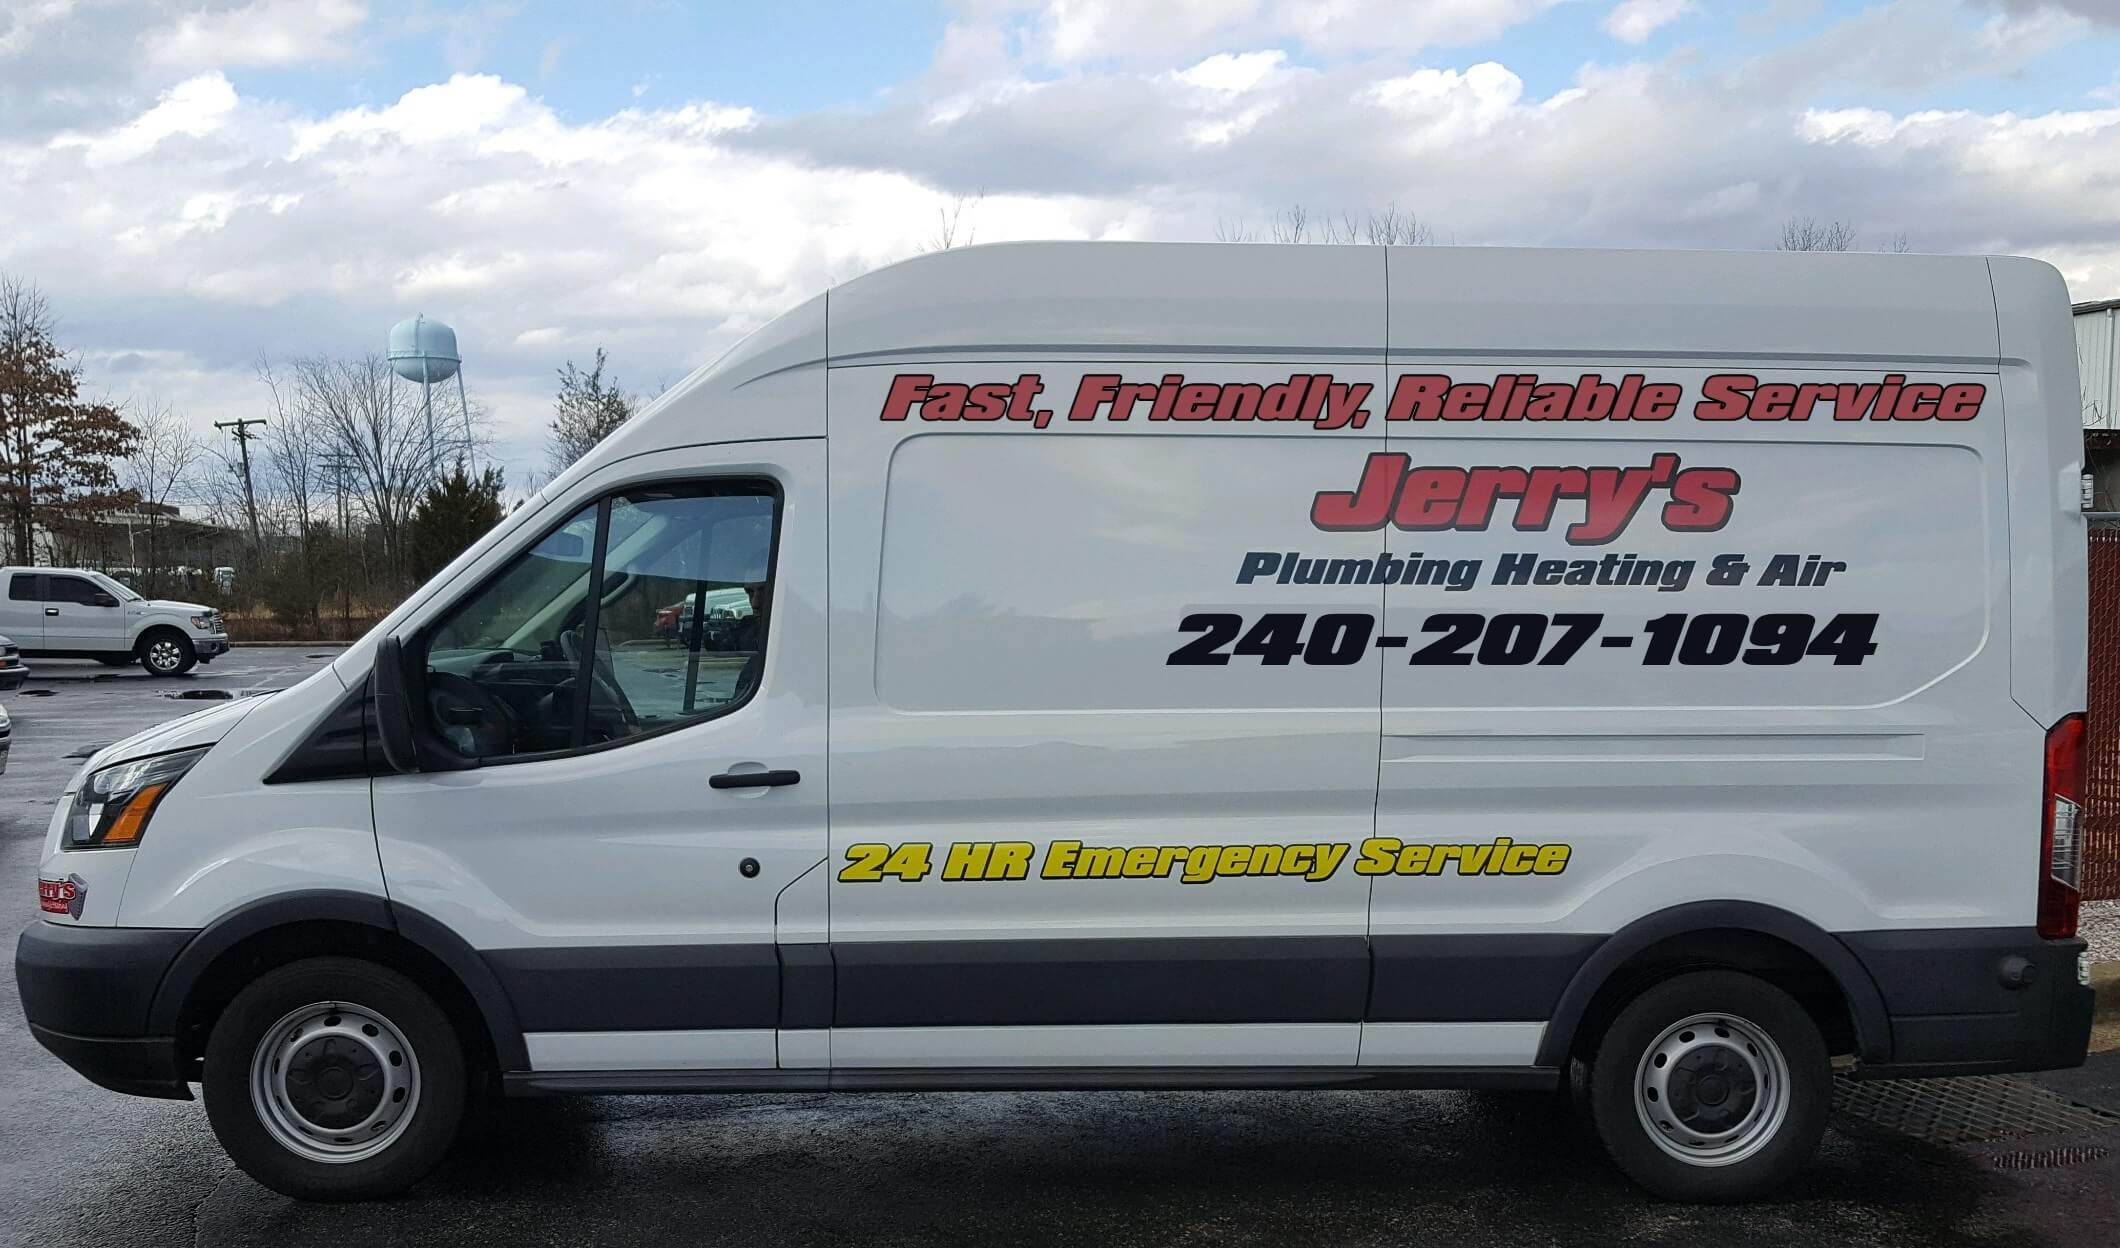 24 hr plumbing, heating and air services - jerry's plumbing, heating